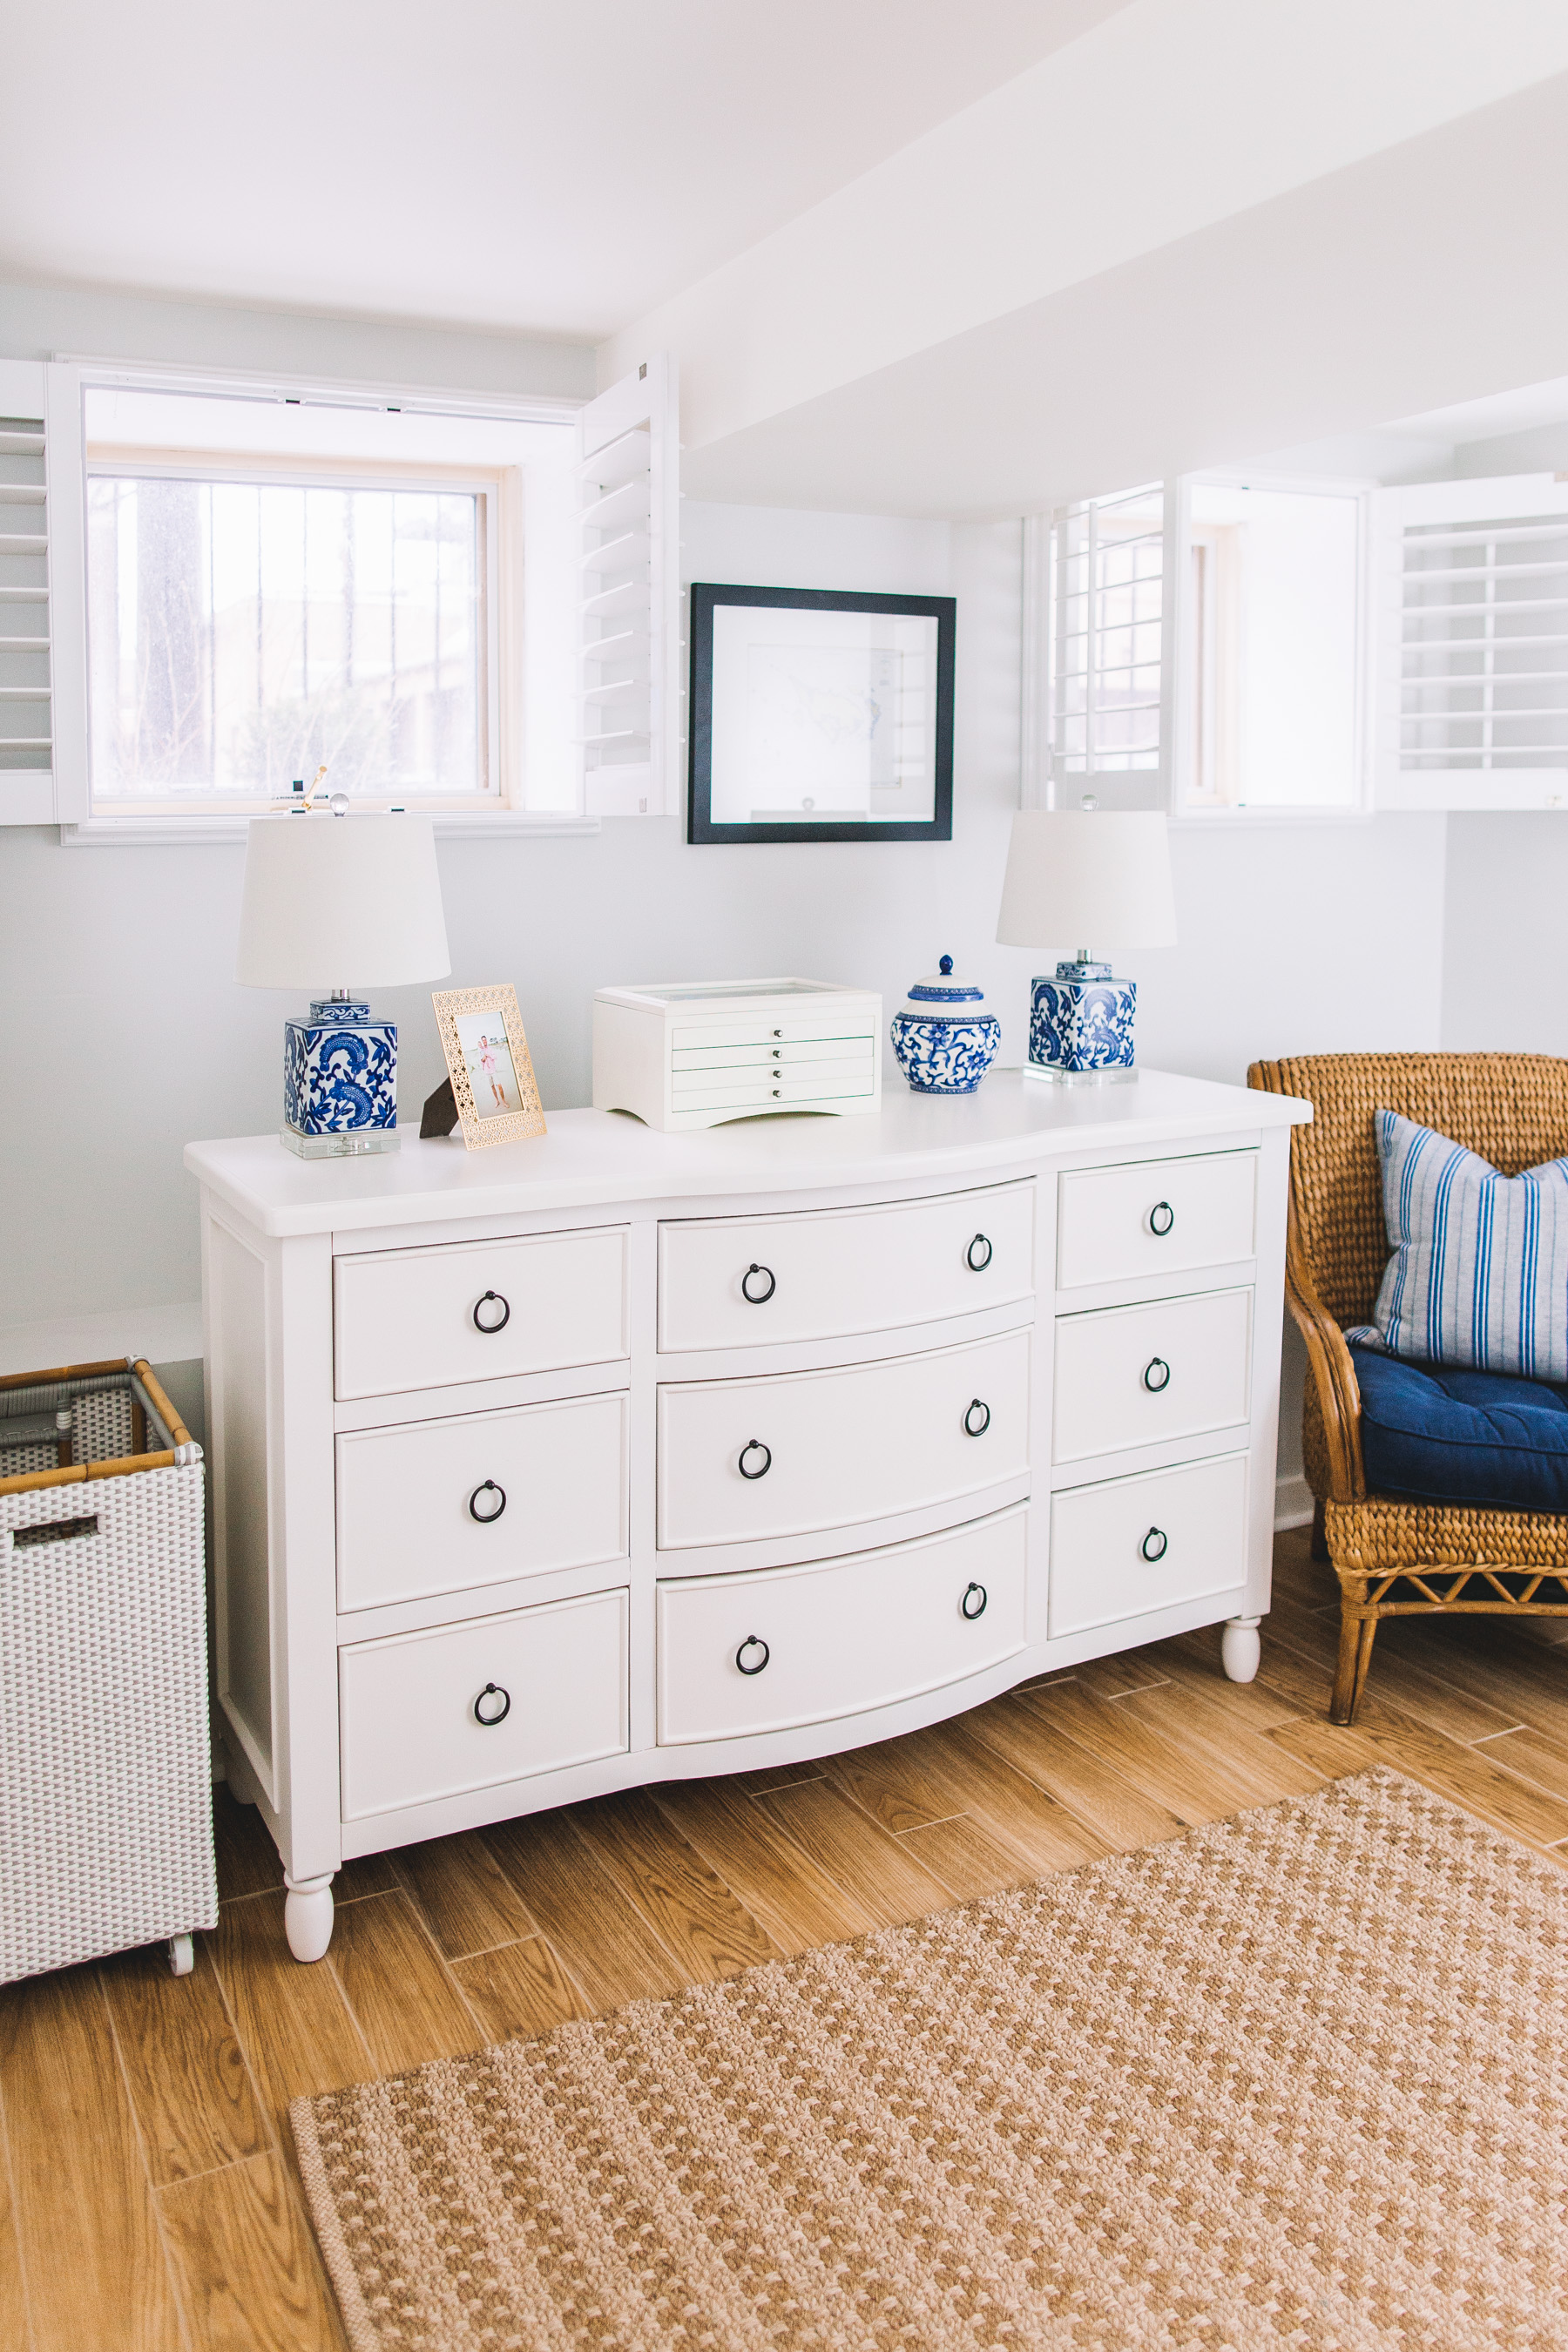 Larger Lamps for Nightstands and white dresser